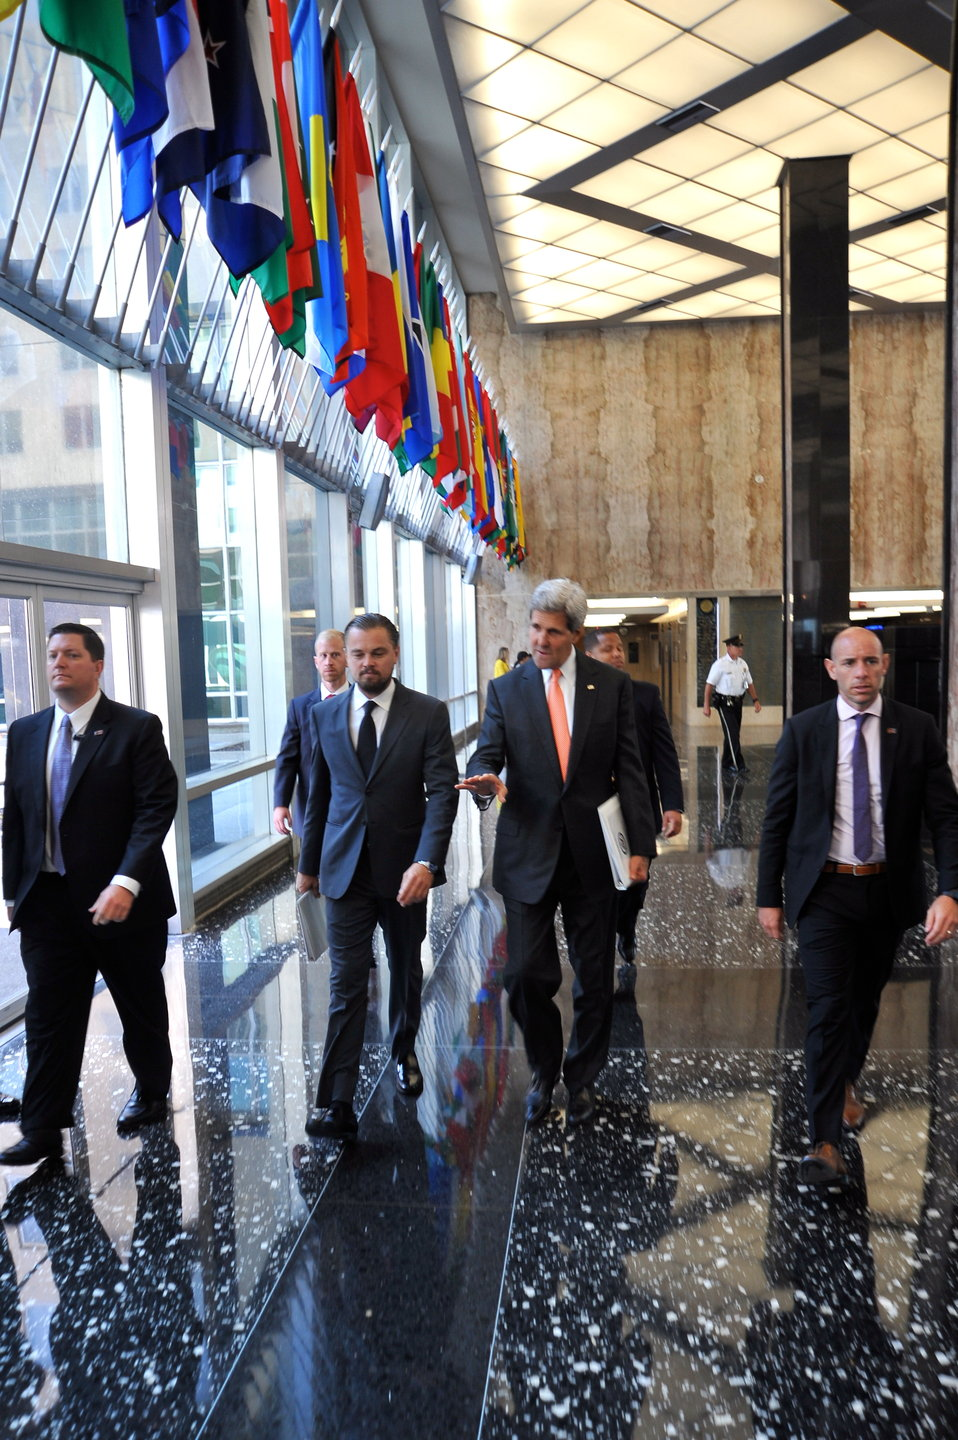 Secretary Kerry Walks With Leonardo DiCaprio in the C Street Lobby of the State Department